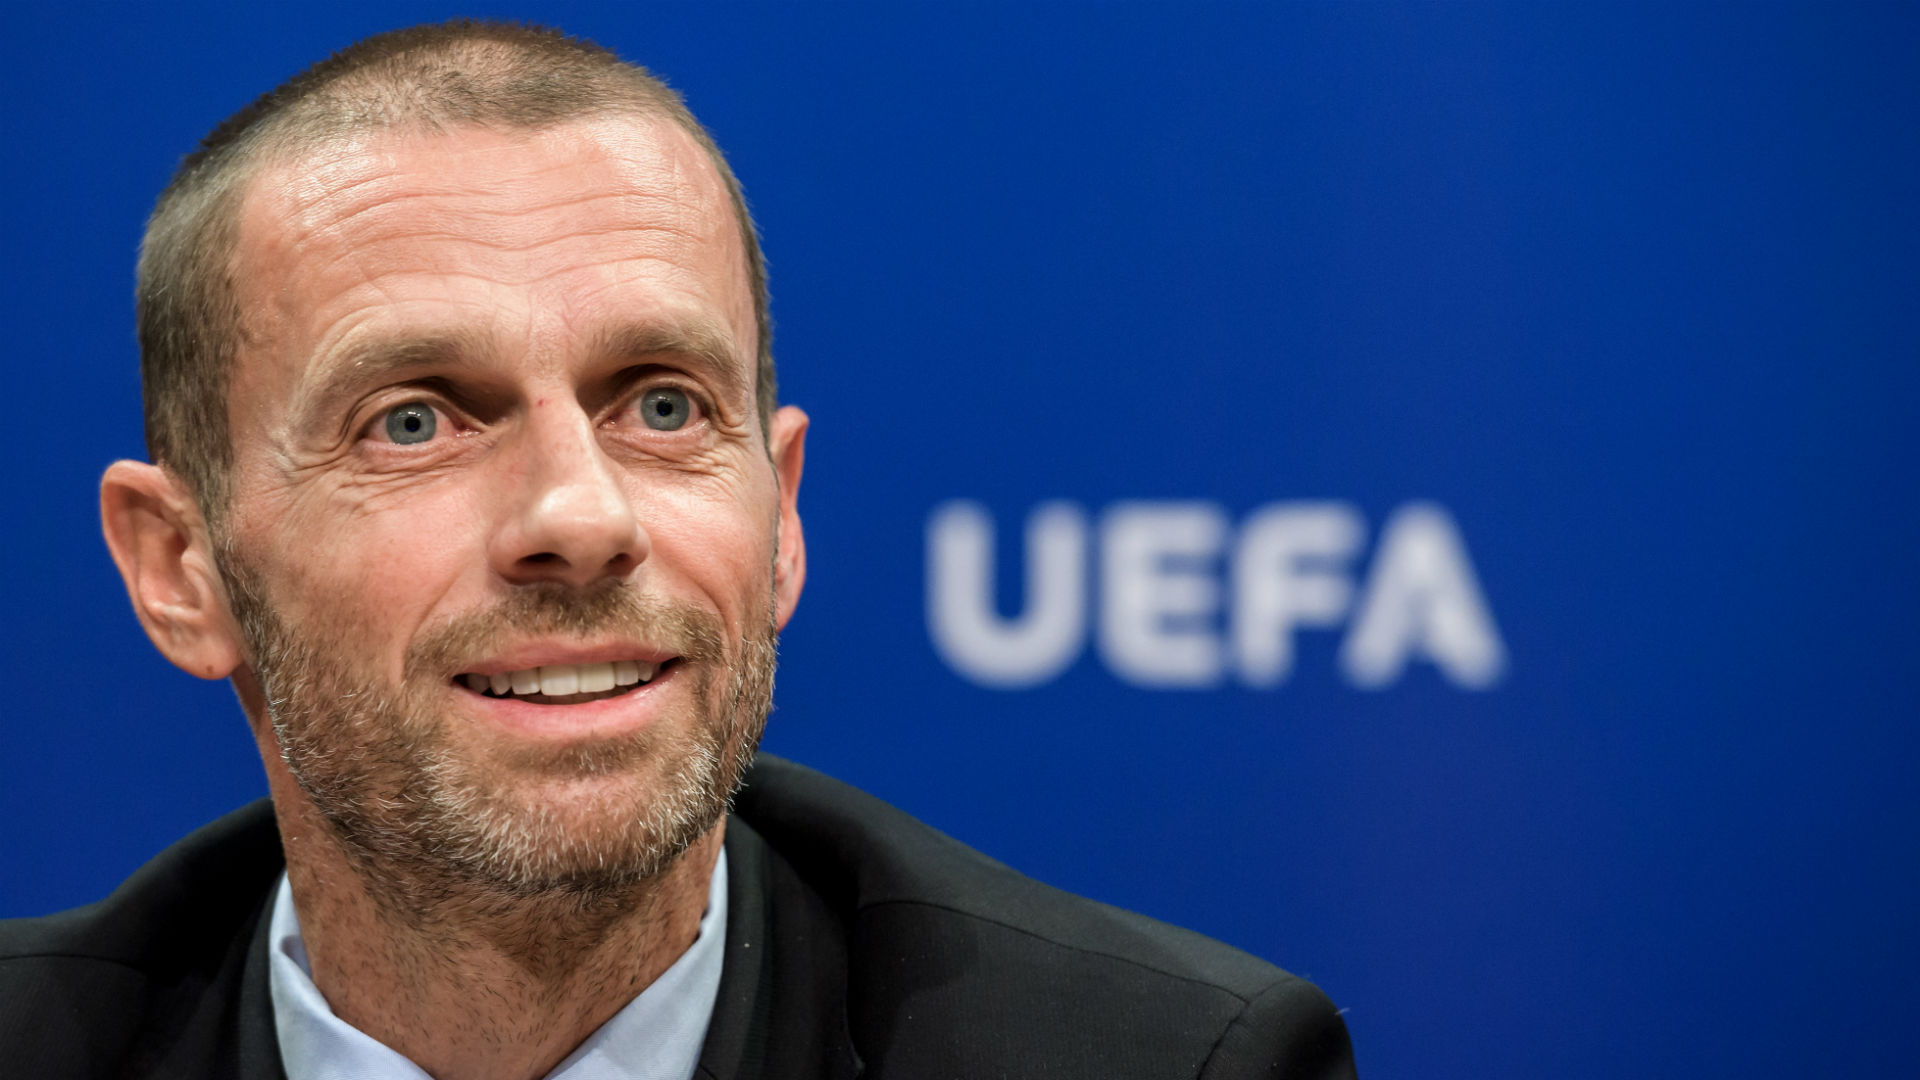 UEFA Recommends Completion Of League Seasons